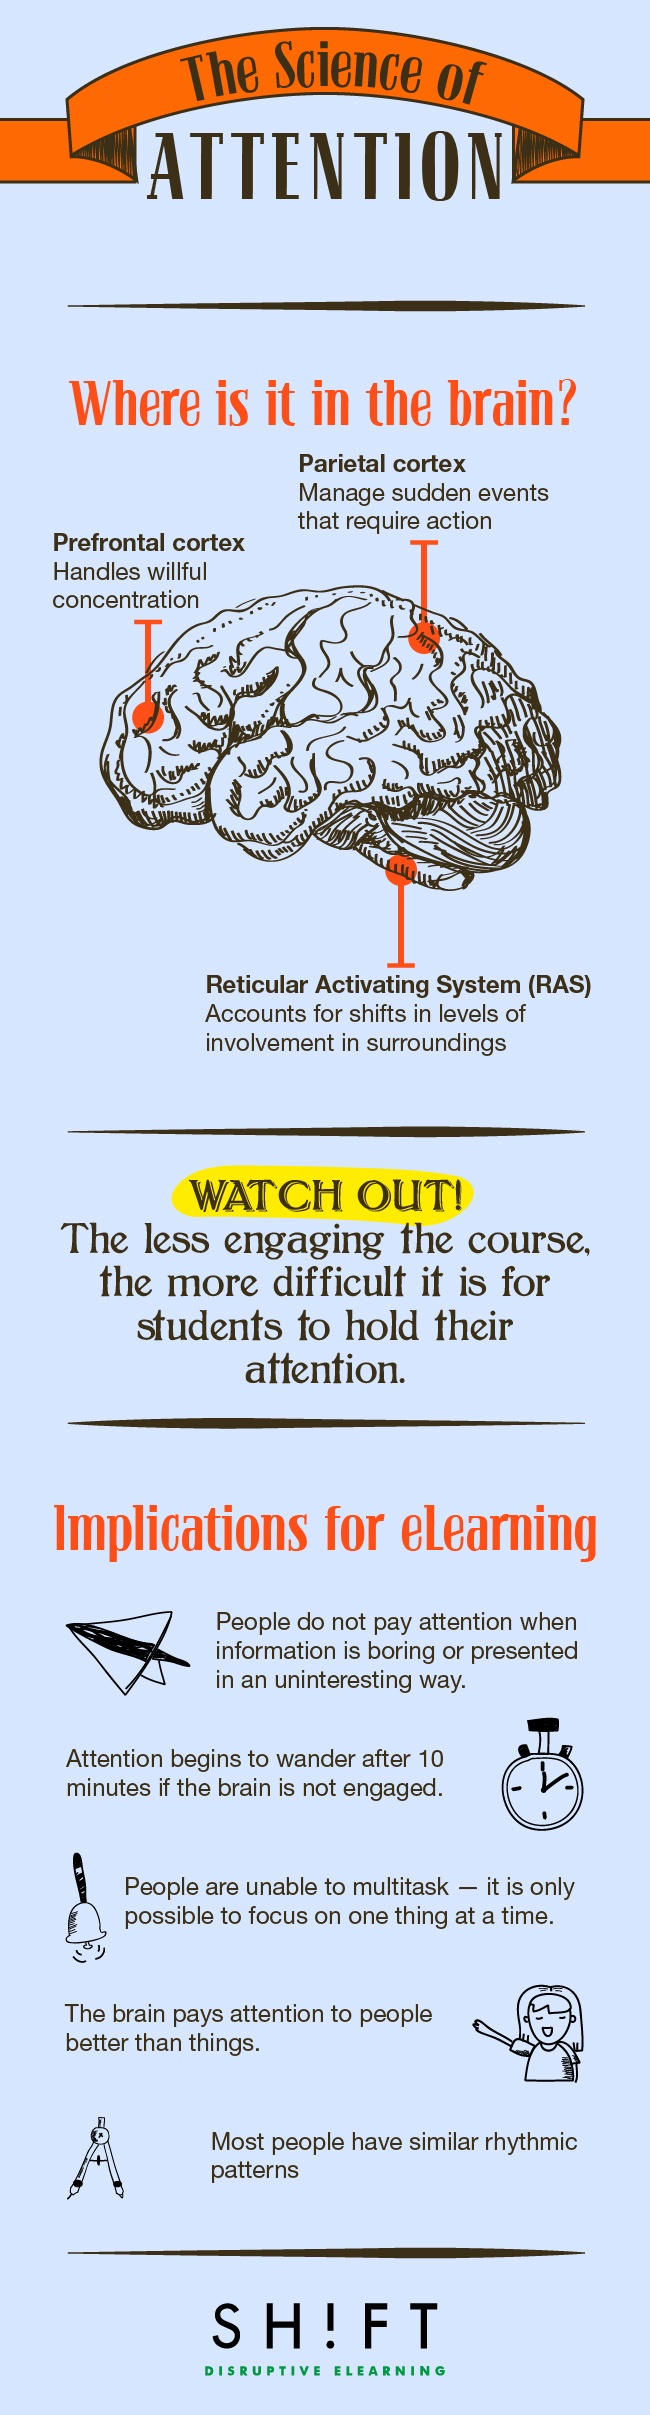 The Science of Attention in eLearning Infographic